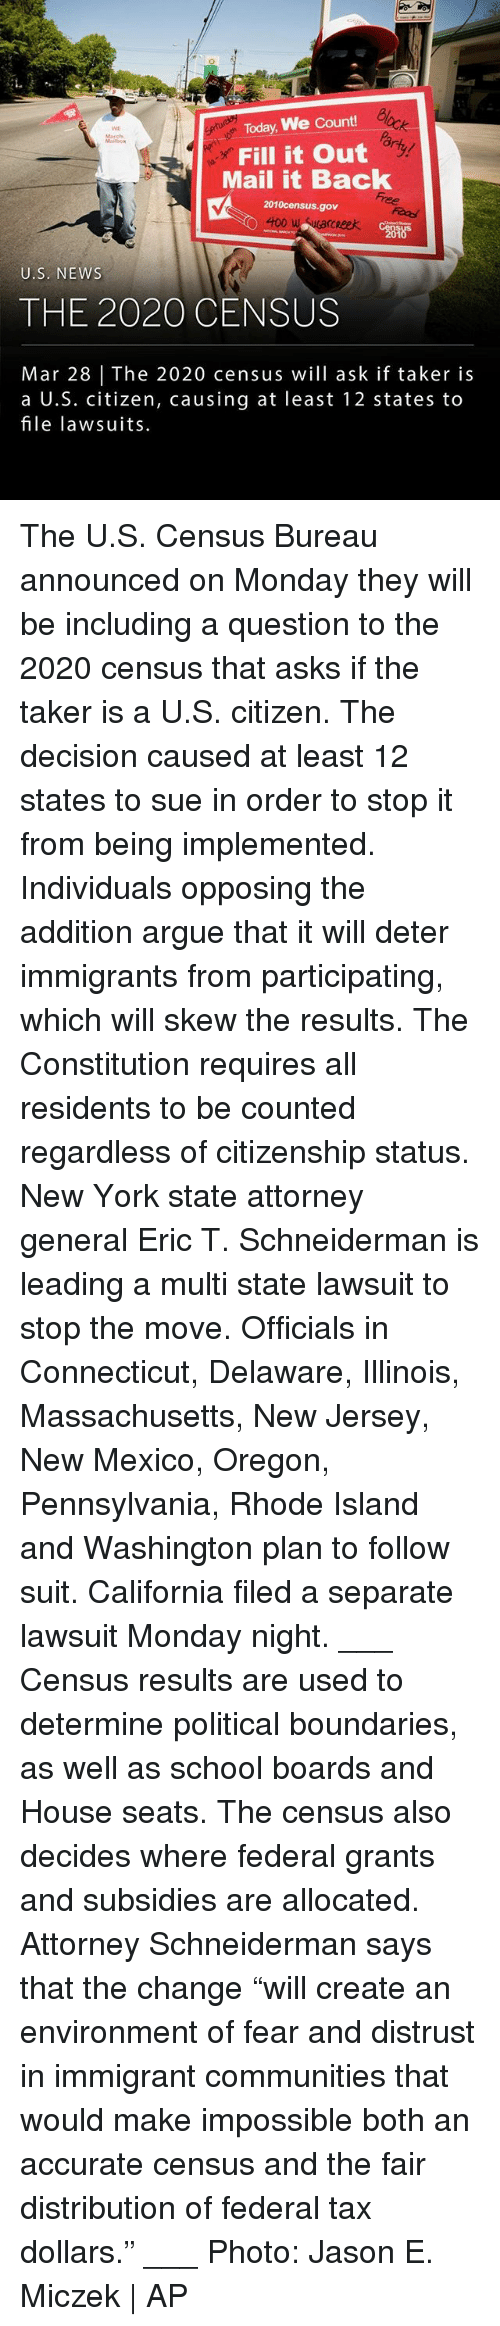 "attorney general: WE  March  u Today, We Count!  Fill it Out  Mail it Back  2010census.gov  cReek  U.S. NEWs  THE 2020 CENSUS  Mar 28 The 2020 census will ask if taker is  a U.S. citizen, causing at least 12 states to  file lawsuits. The U.S. Census Bureau announced on Monday they will be including a question to the 2020 census that asks if the taker is a U.S. citizen. The decision caused at least 12 states to sue in order to stop it from being implemented. Individuals opposing the addition argue that it will deter immigrants from participating, which will skew the results. The Constitution requires all residents to be counted regardless of citizenship status. New York state attorney general Eric T. Schneiderman is leading a multi state lawsuit to stop the move. Officials in Connecticut, Delaware, Illinois, Massachusetts, New Jersey, New Mexico, Oregon, Pennsylvania, Rhode Island and Washington plan to follow suit. California filed a separate lawsuit Monday night. ___ Census results are used to determine political boundaries, as well as school boards and House seats. The census also decides where federal grants and subsidies are allocated. Attorney Schneiderman says that the change ""will create an environment of fear and distrust in immigrant communities that would make impossible both an accurate census and the fair distribution of federal tax dollars."" ___ Photo: Jason E. Miczek 